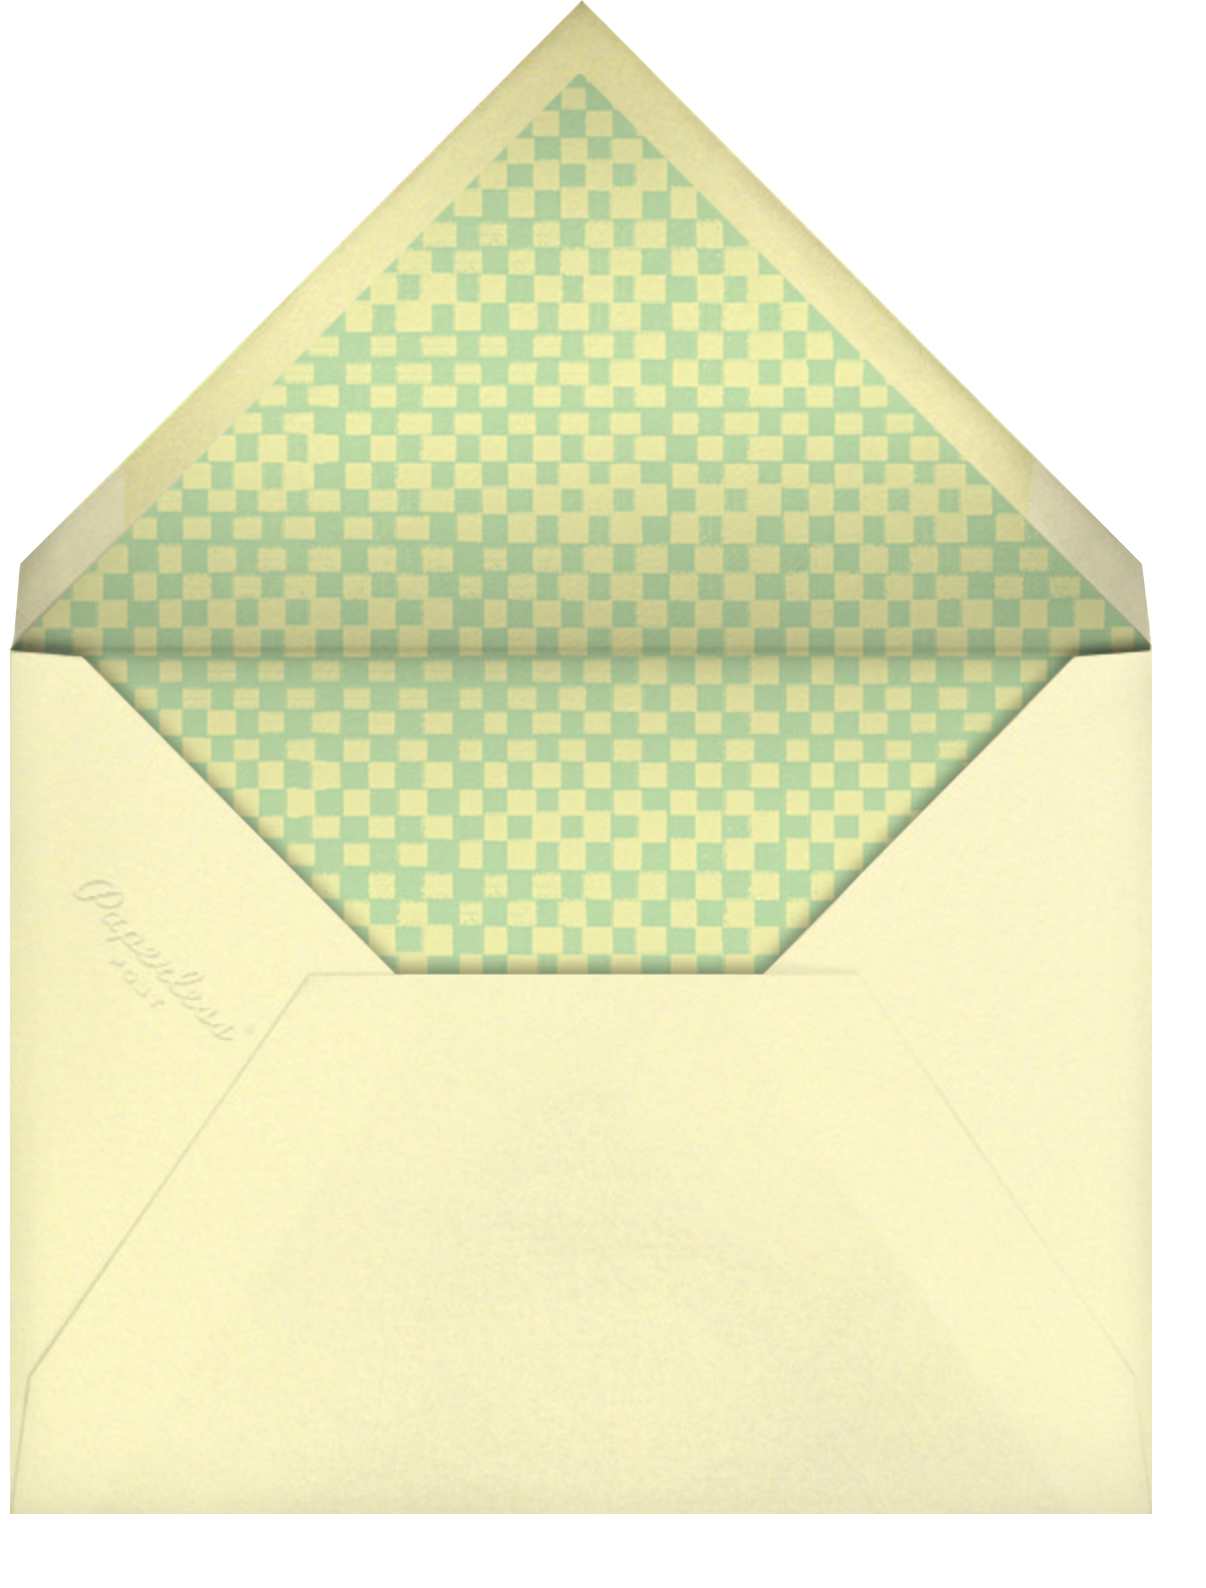 Handful of Sunshine - Tan - Paperless Post - Thinking of you - envelope back